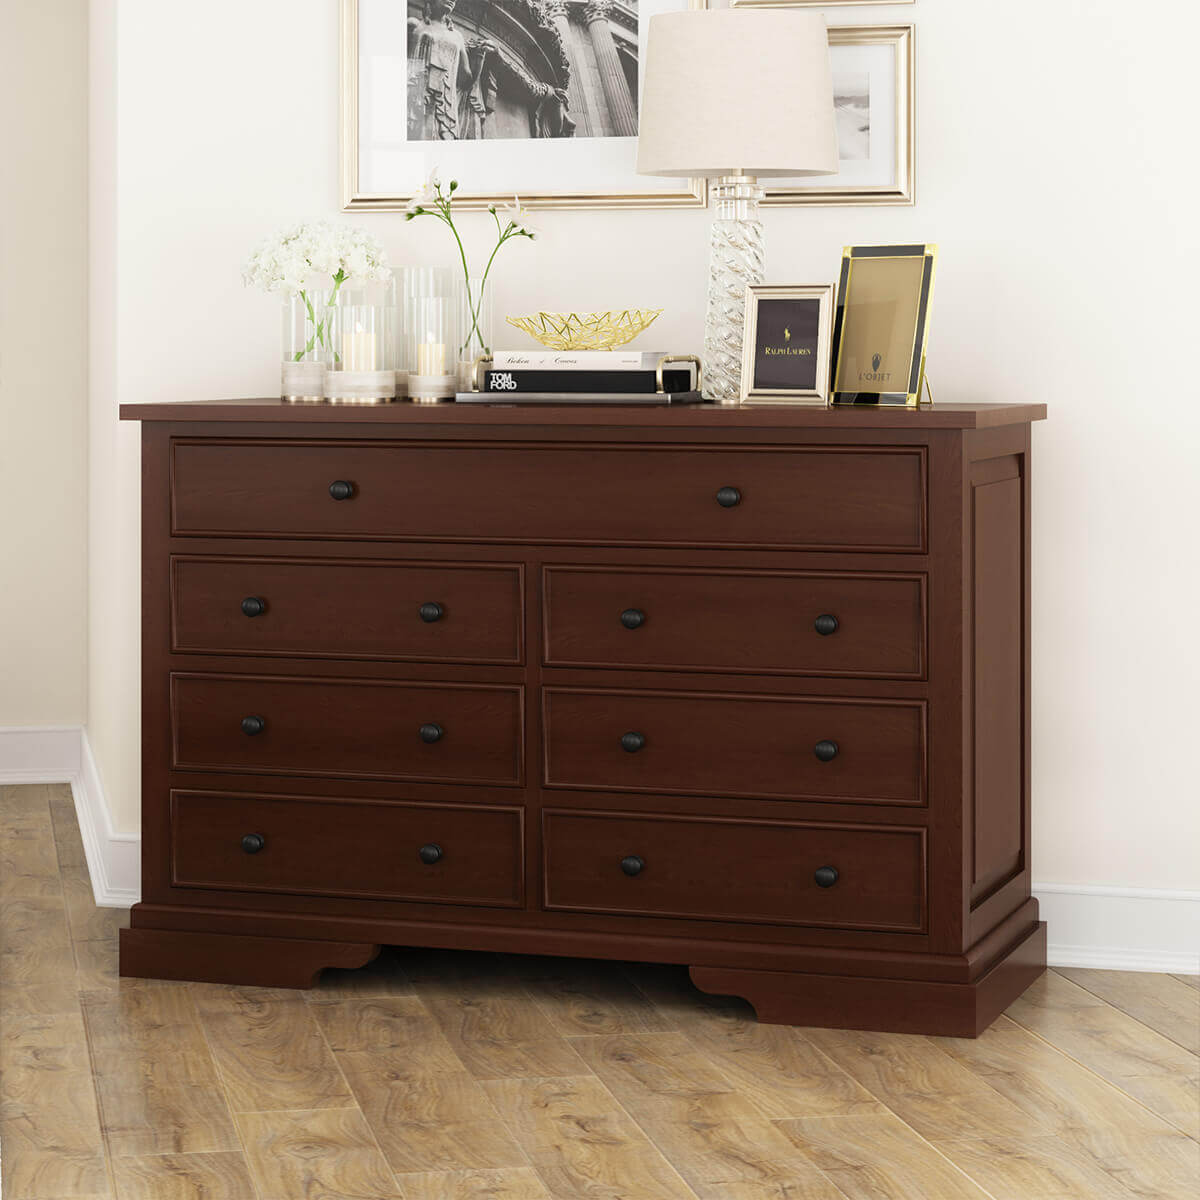 Accoville Traditional Mahogany Wood 7 Drawer Double Dresser